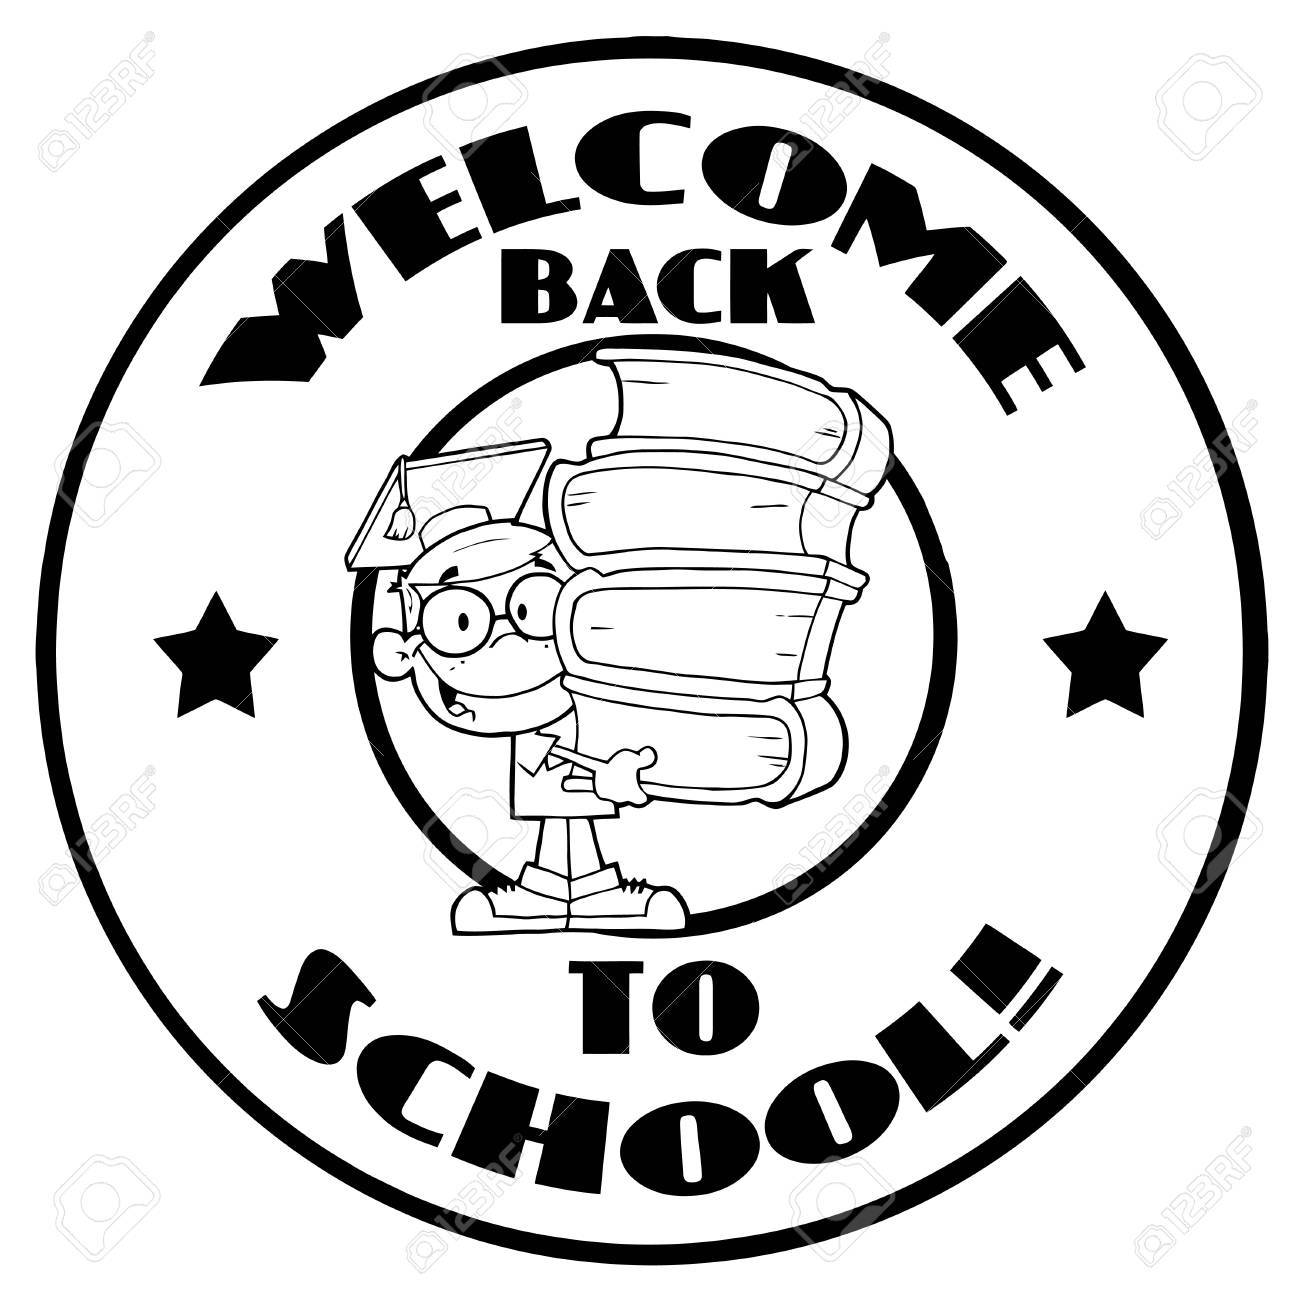 black and white school boy with books on a welcome back to school rh 123rf com clipart welcome back to school welcome back to school clipart free